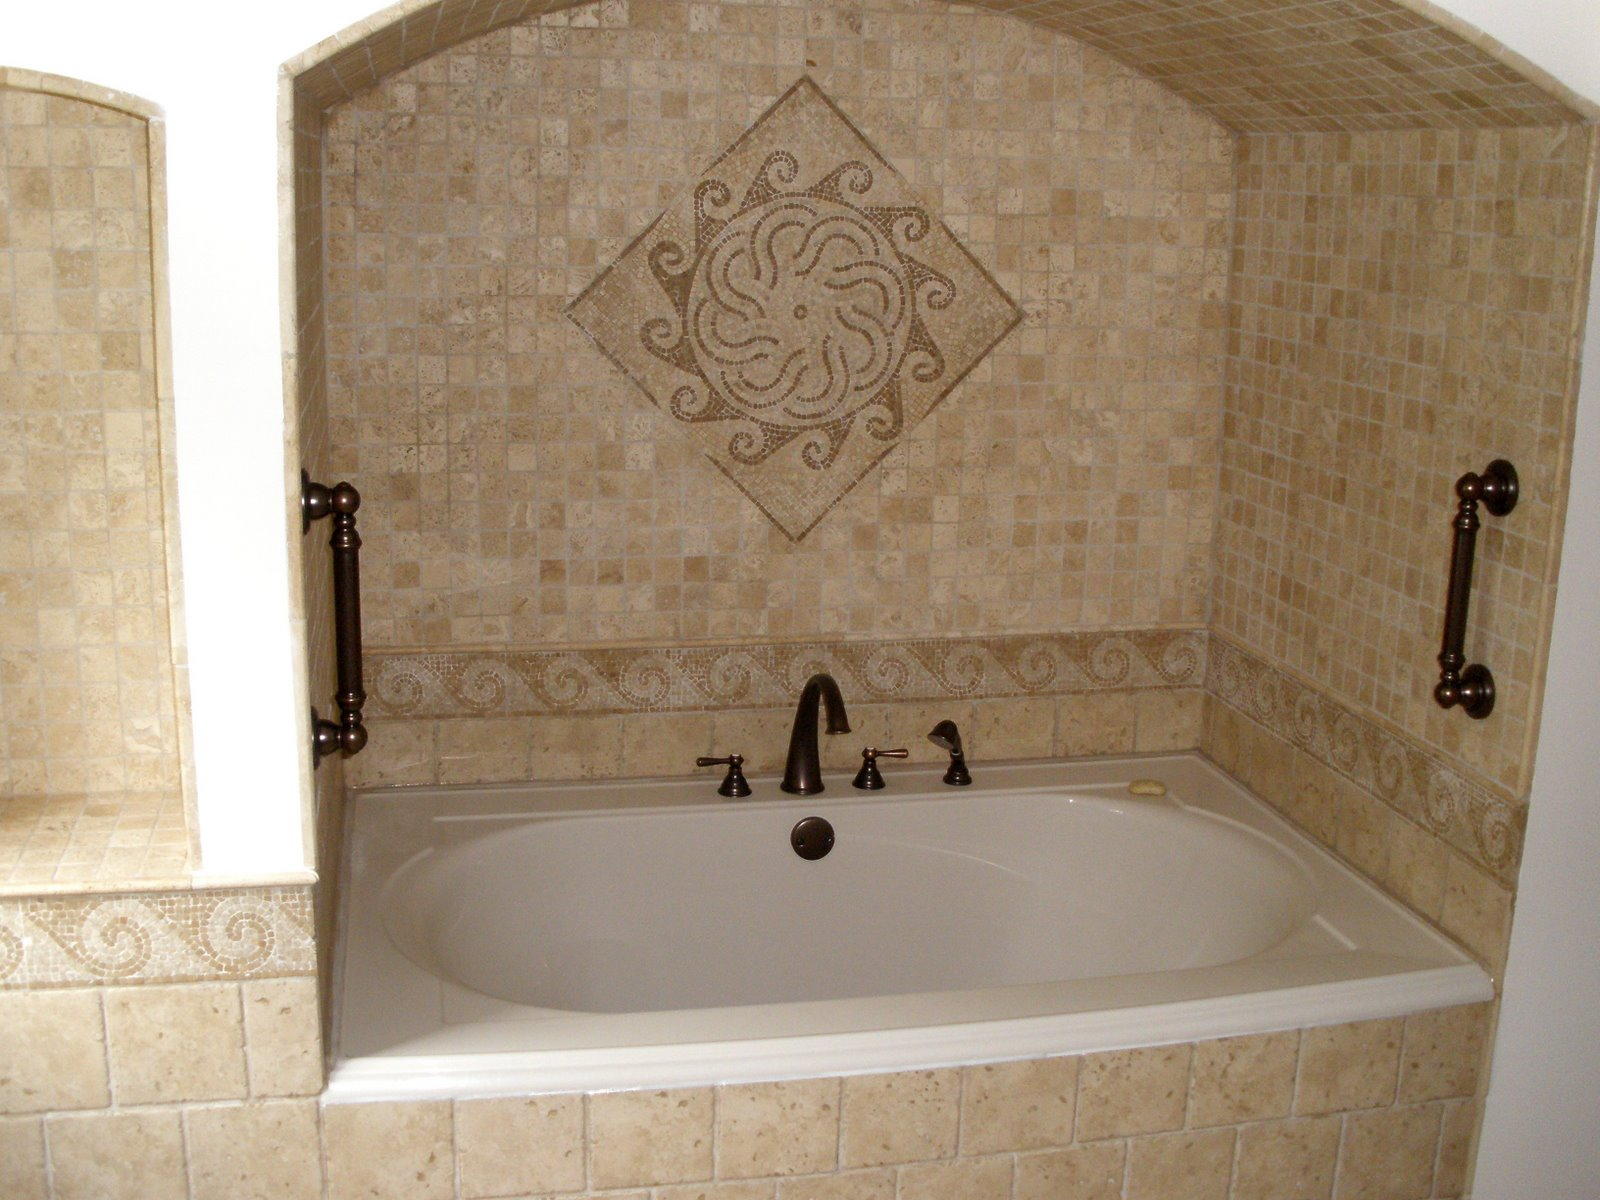 Captivating Interior Bathroom Using Nice Wall Tile also Simple Bathtub